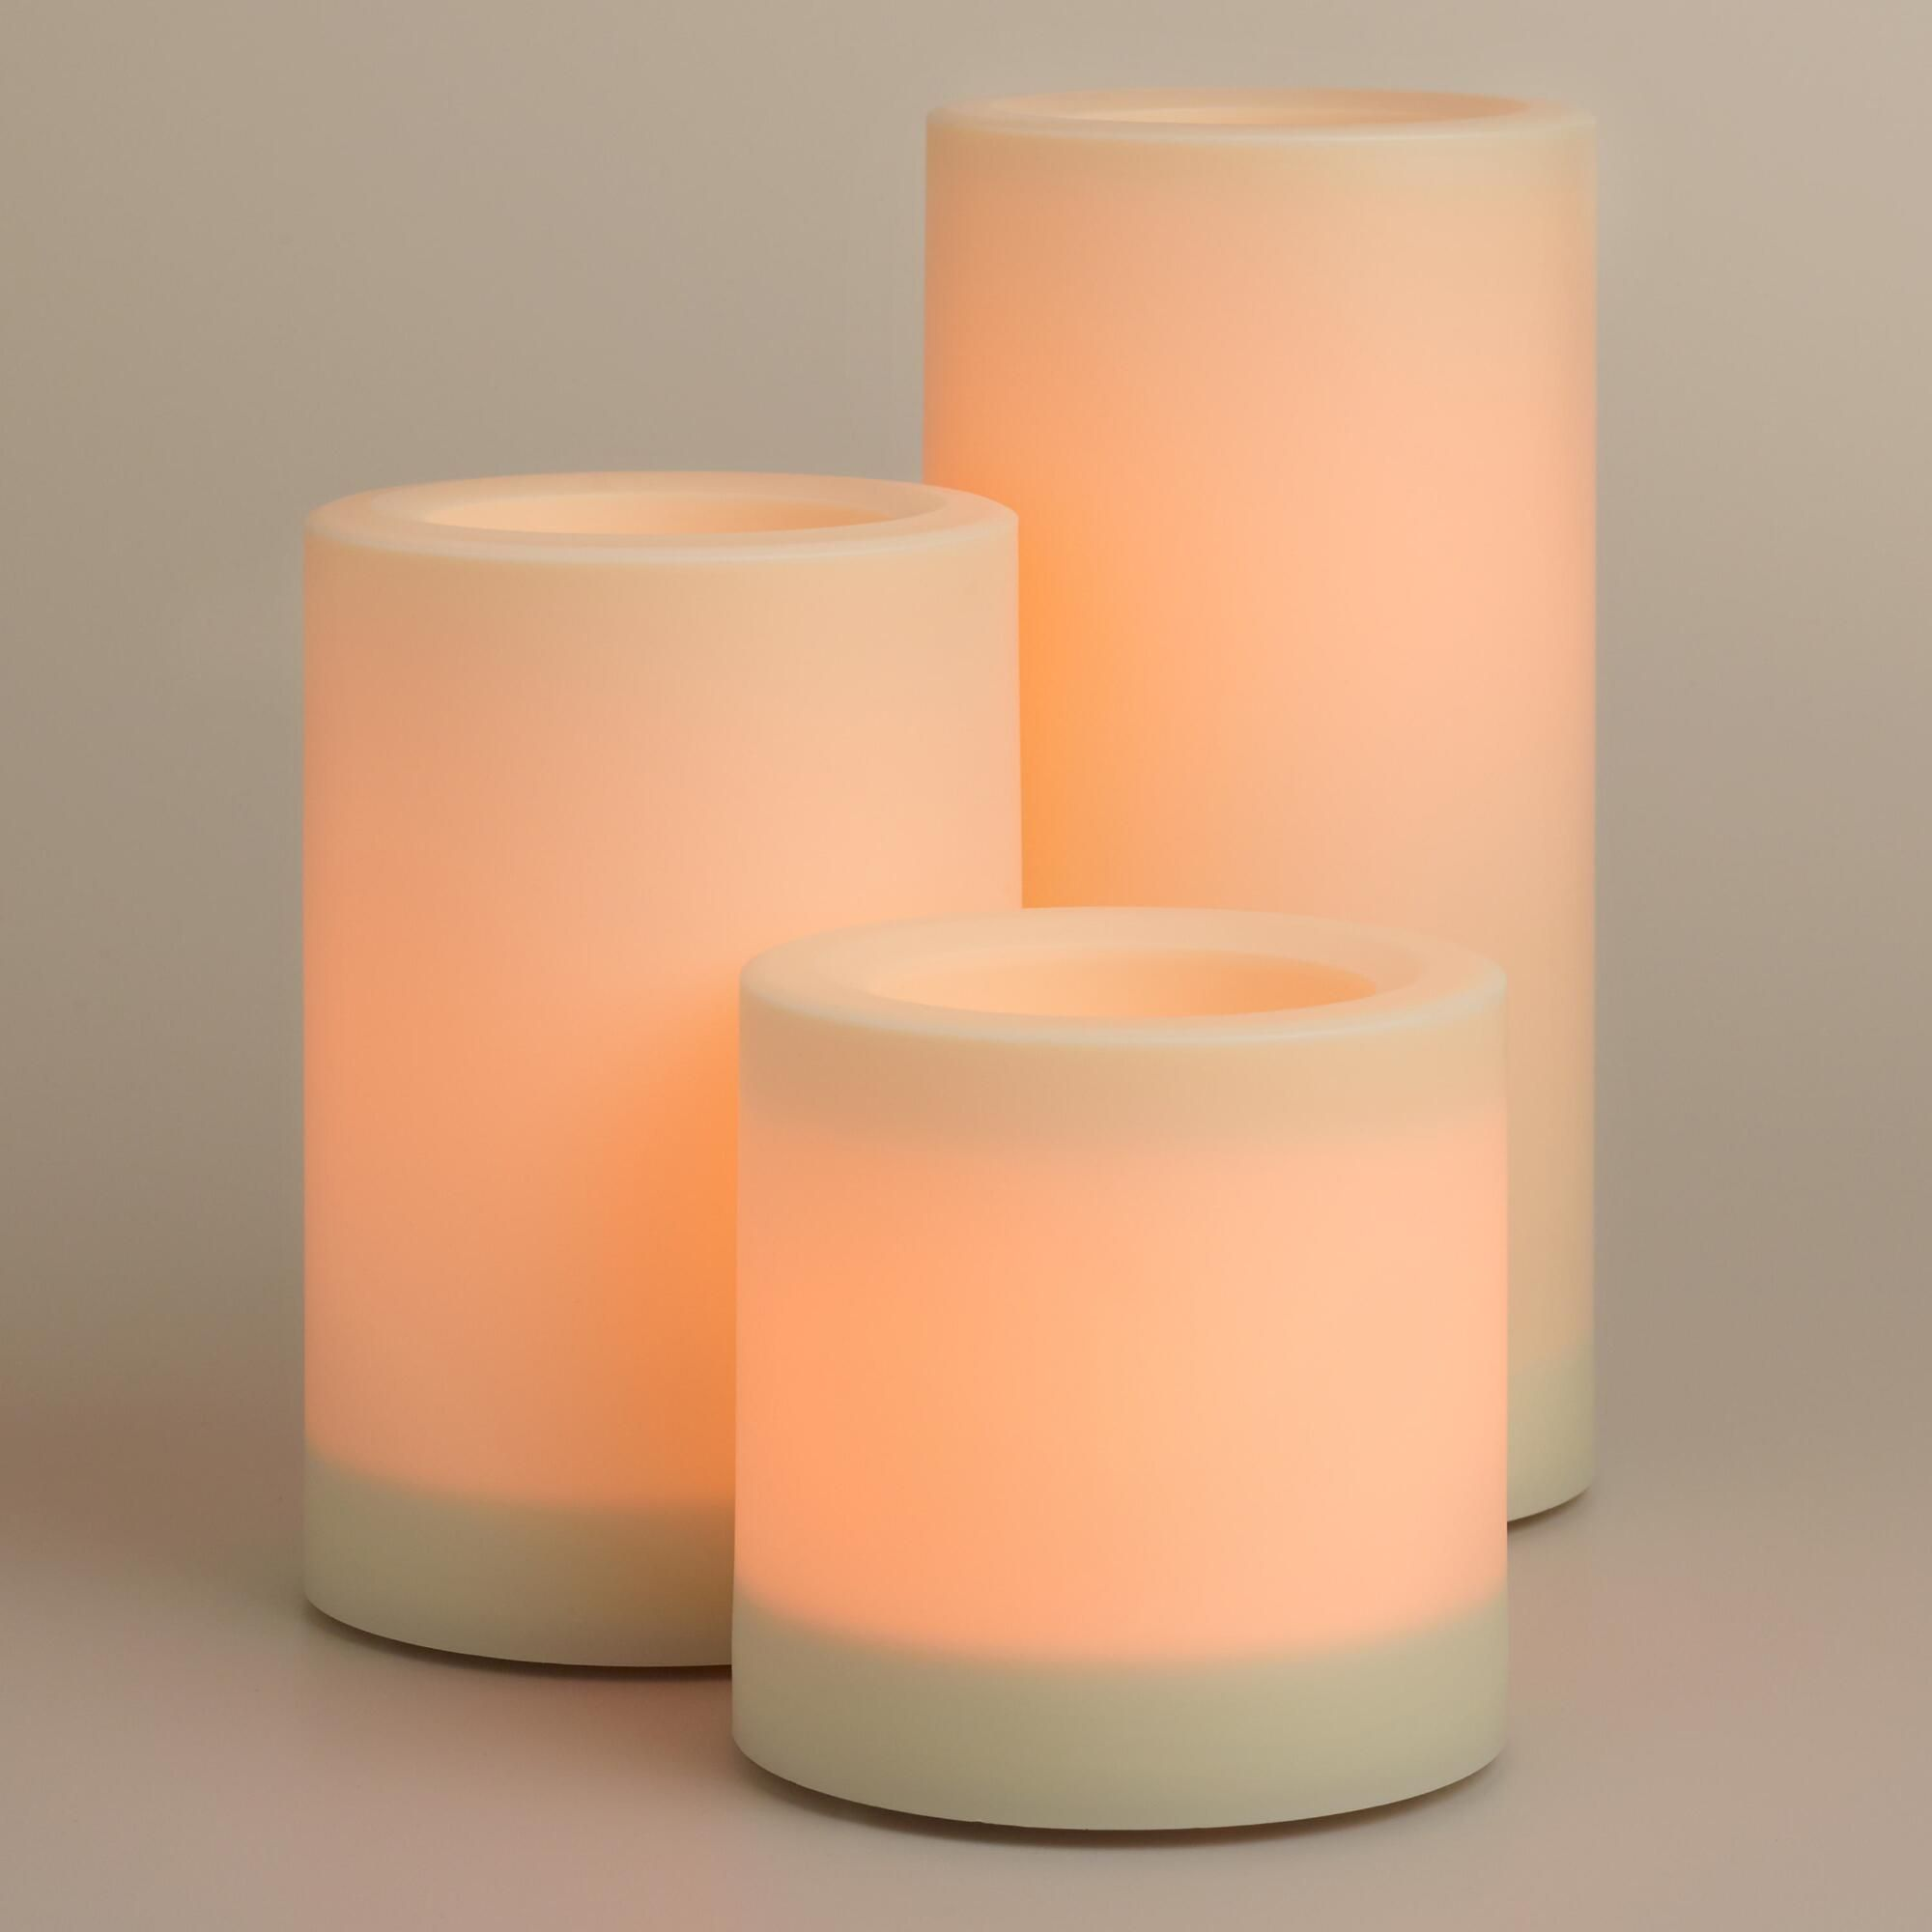 Outdoor Flameless Candles Fascinating Flameless Led Candles For The Outdoors At World Marketcomes With A Inspiration